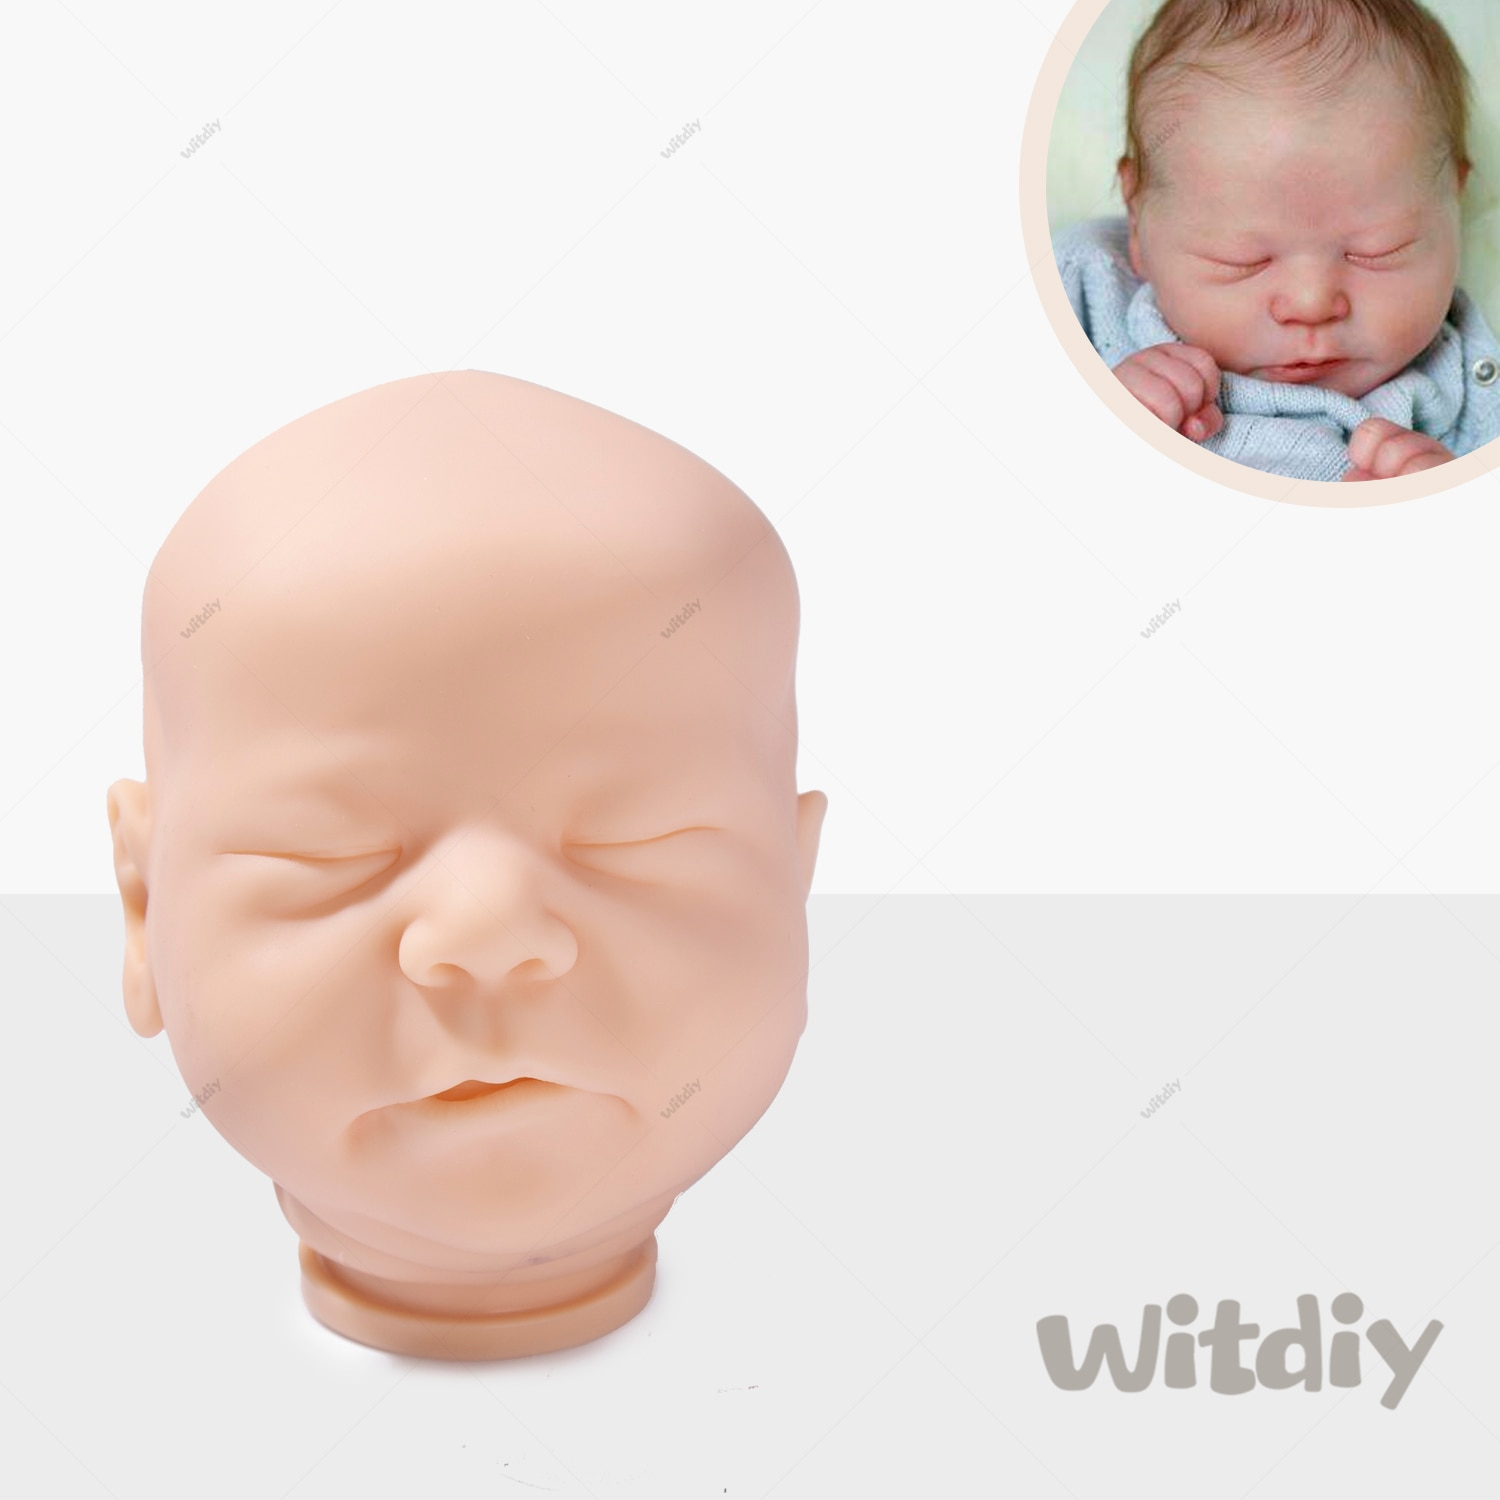 Witdiy Chase 50CM Reborn baby doll kit Unpainted reborn kit lifelike kit Reborn doll kit blank parts